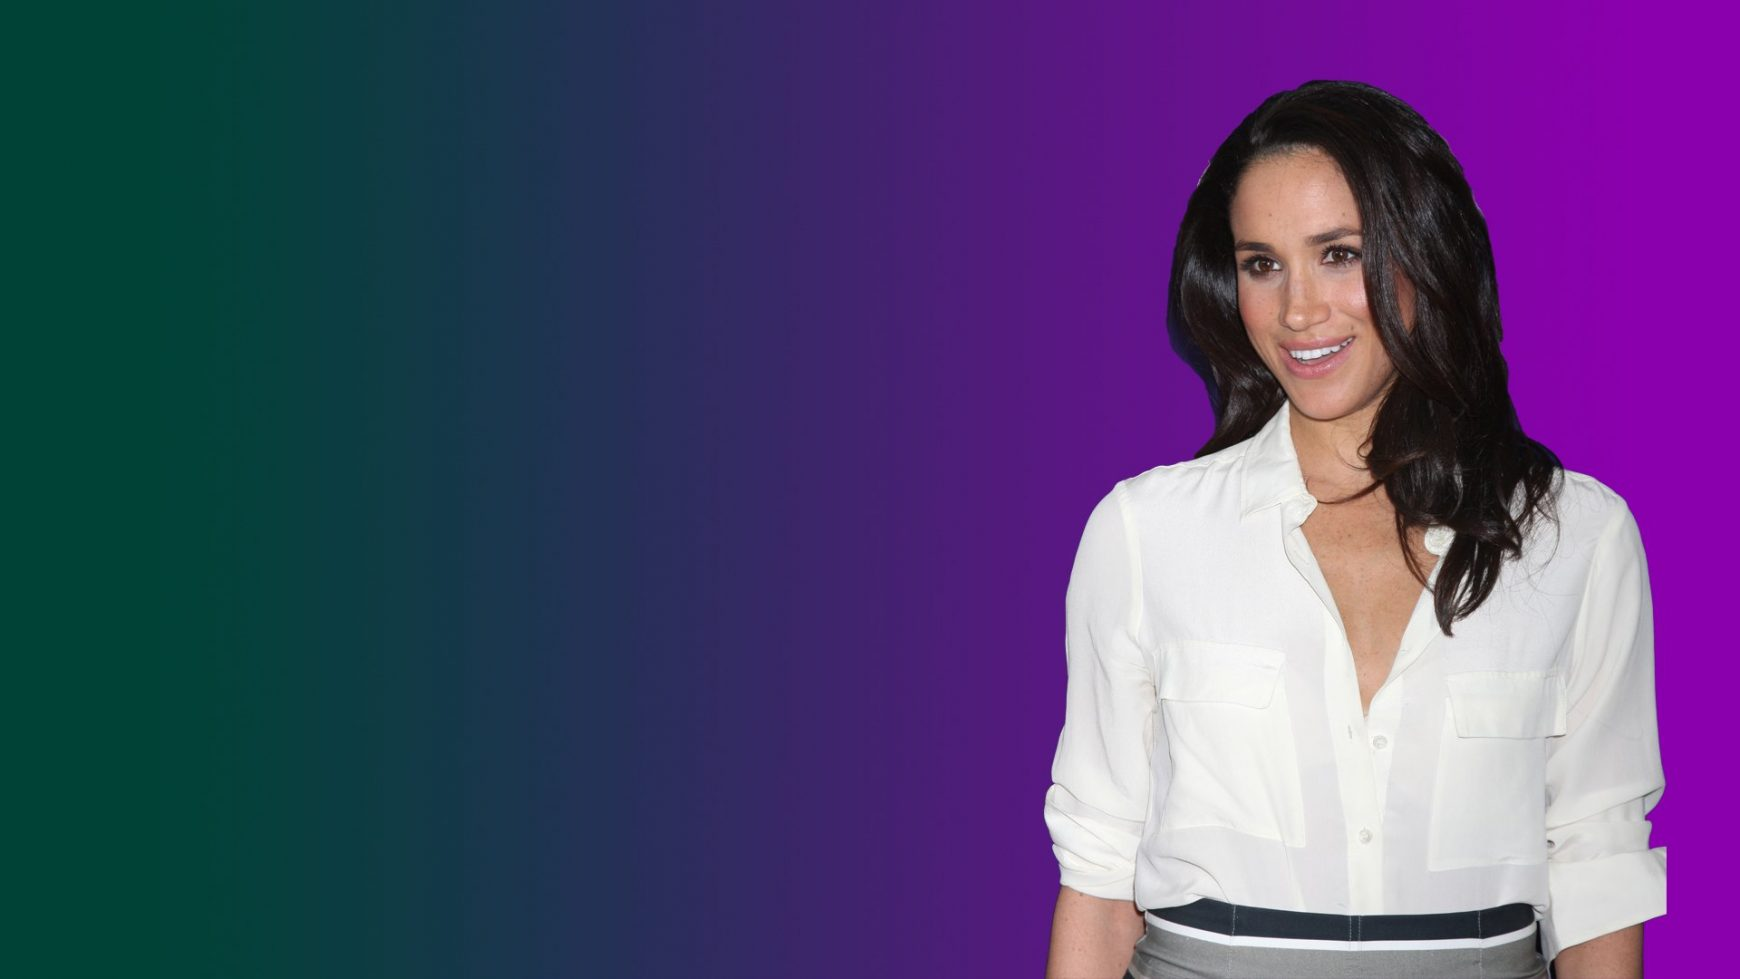 Meghan Markle's Official Word on Her Dad